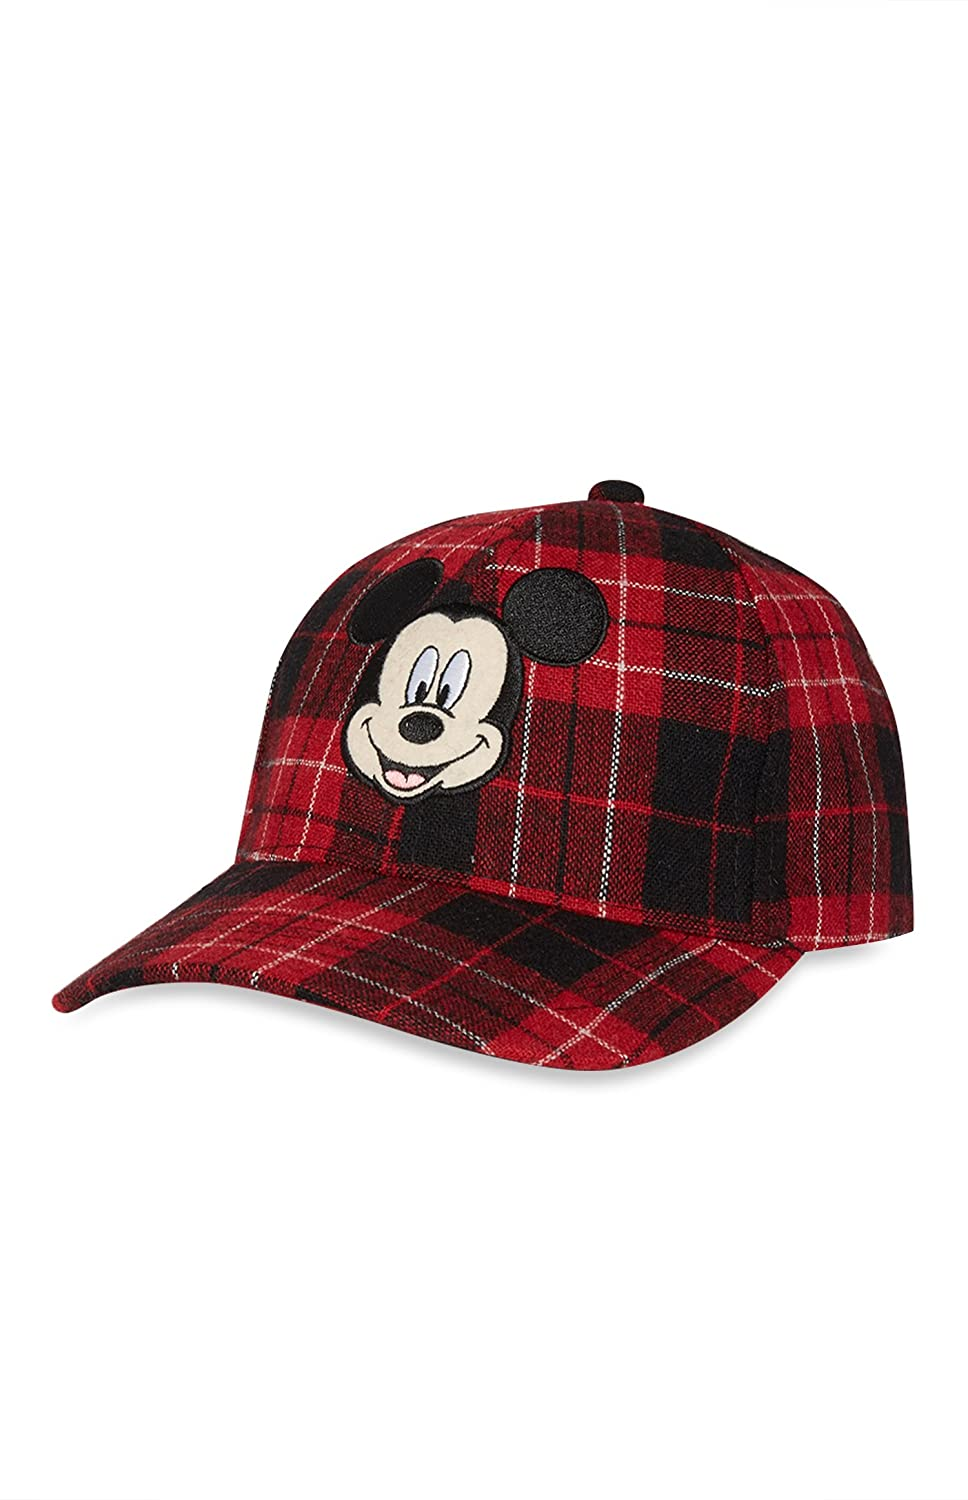 Disney Mickey Mouse Red Tartan Baseball Cap with Adjustable Strap